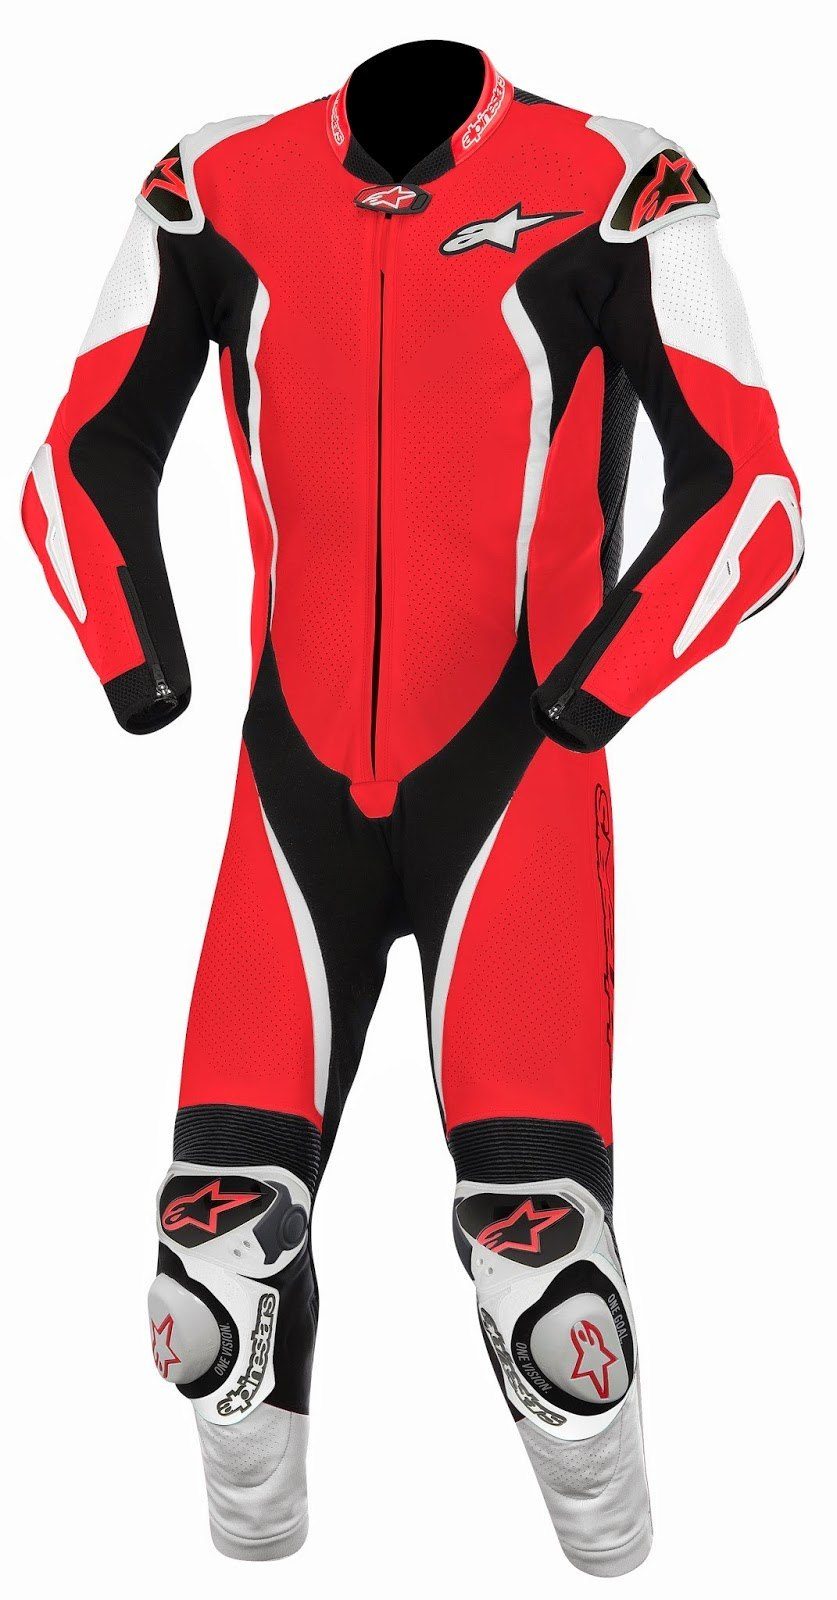 GP_TECH_leather_suit_red_white_black